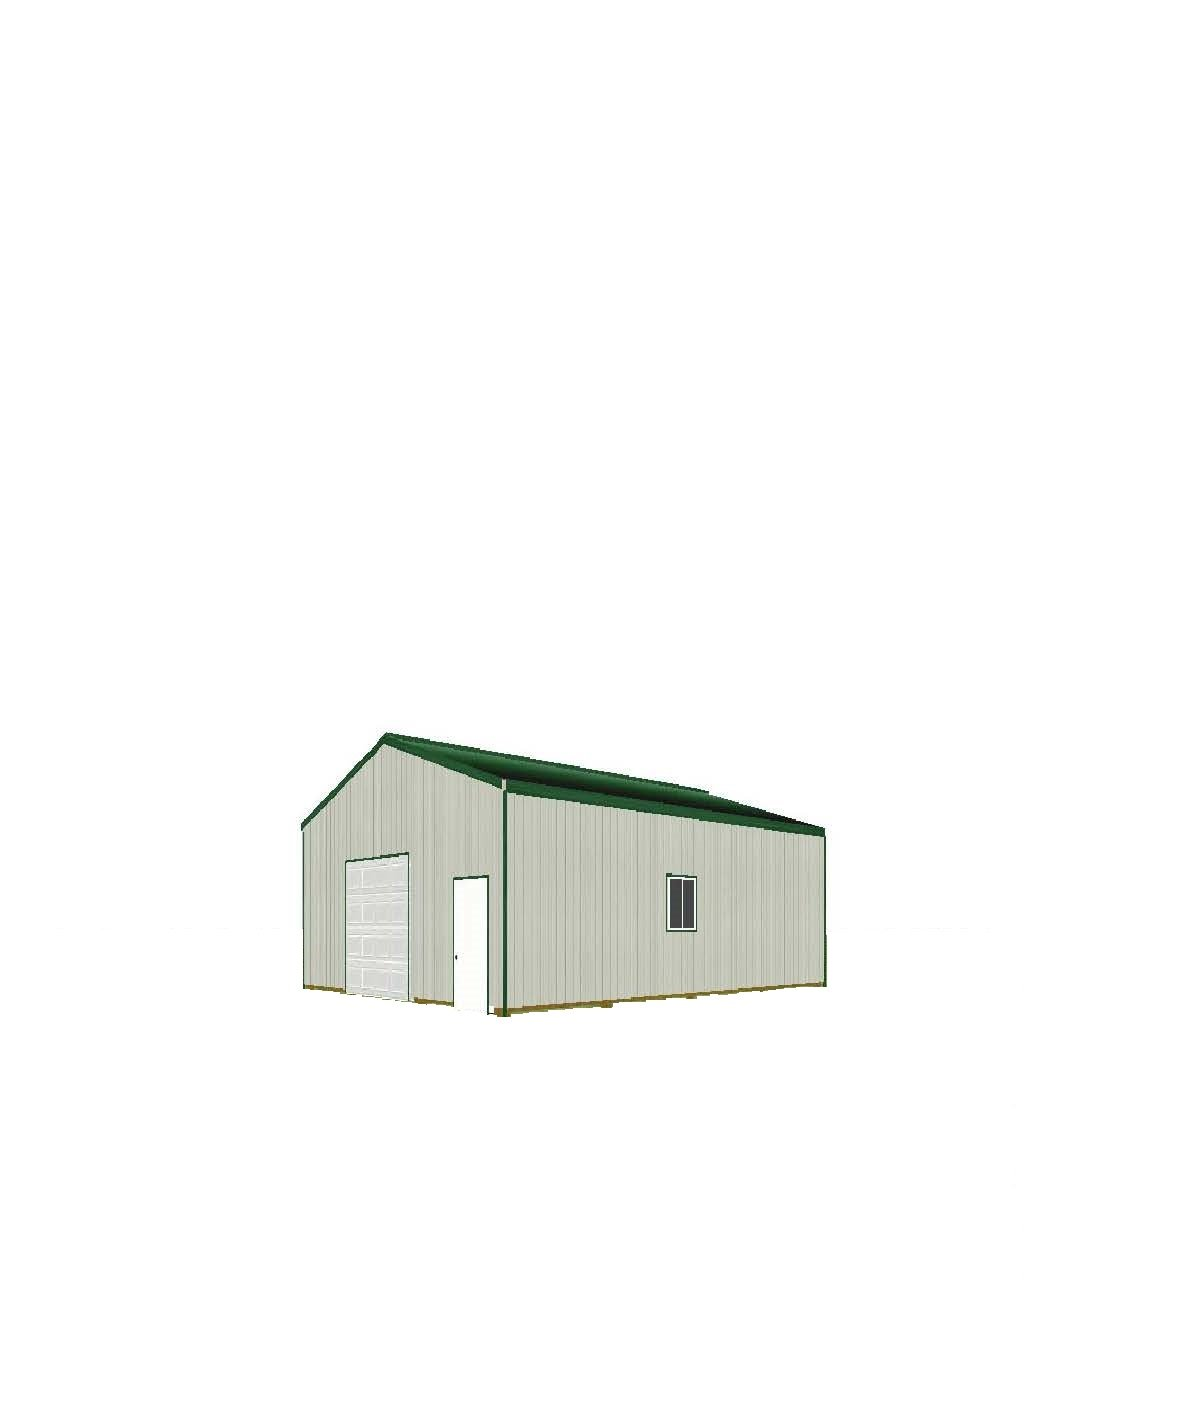 Steel Building Kits And Metal Buildings By Steel Building: 24' X 32' X 10' Post Frame Building Kit